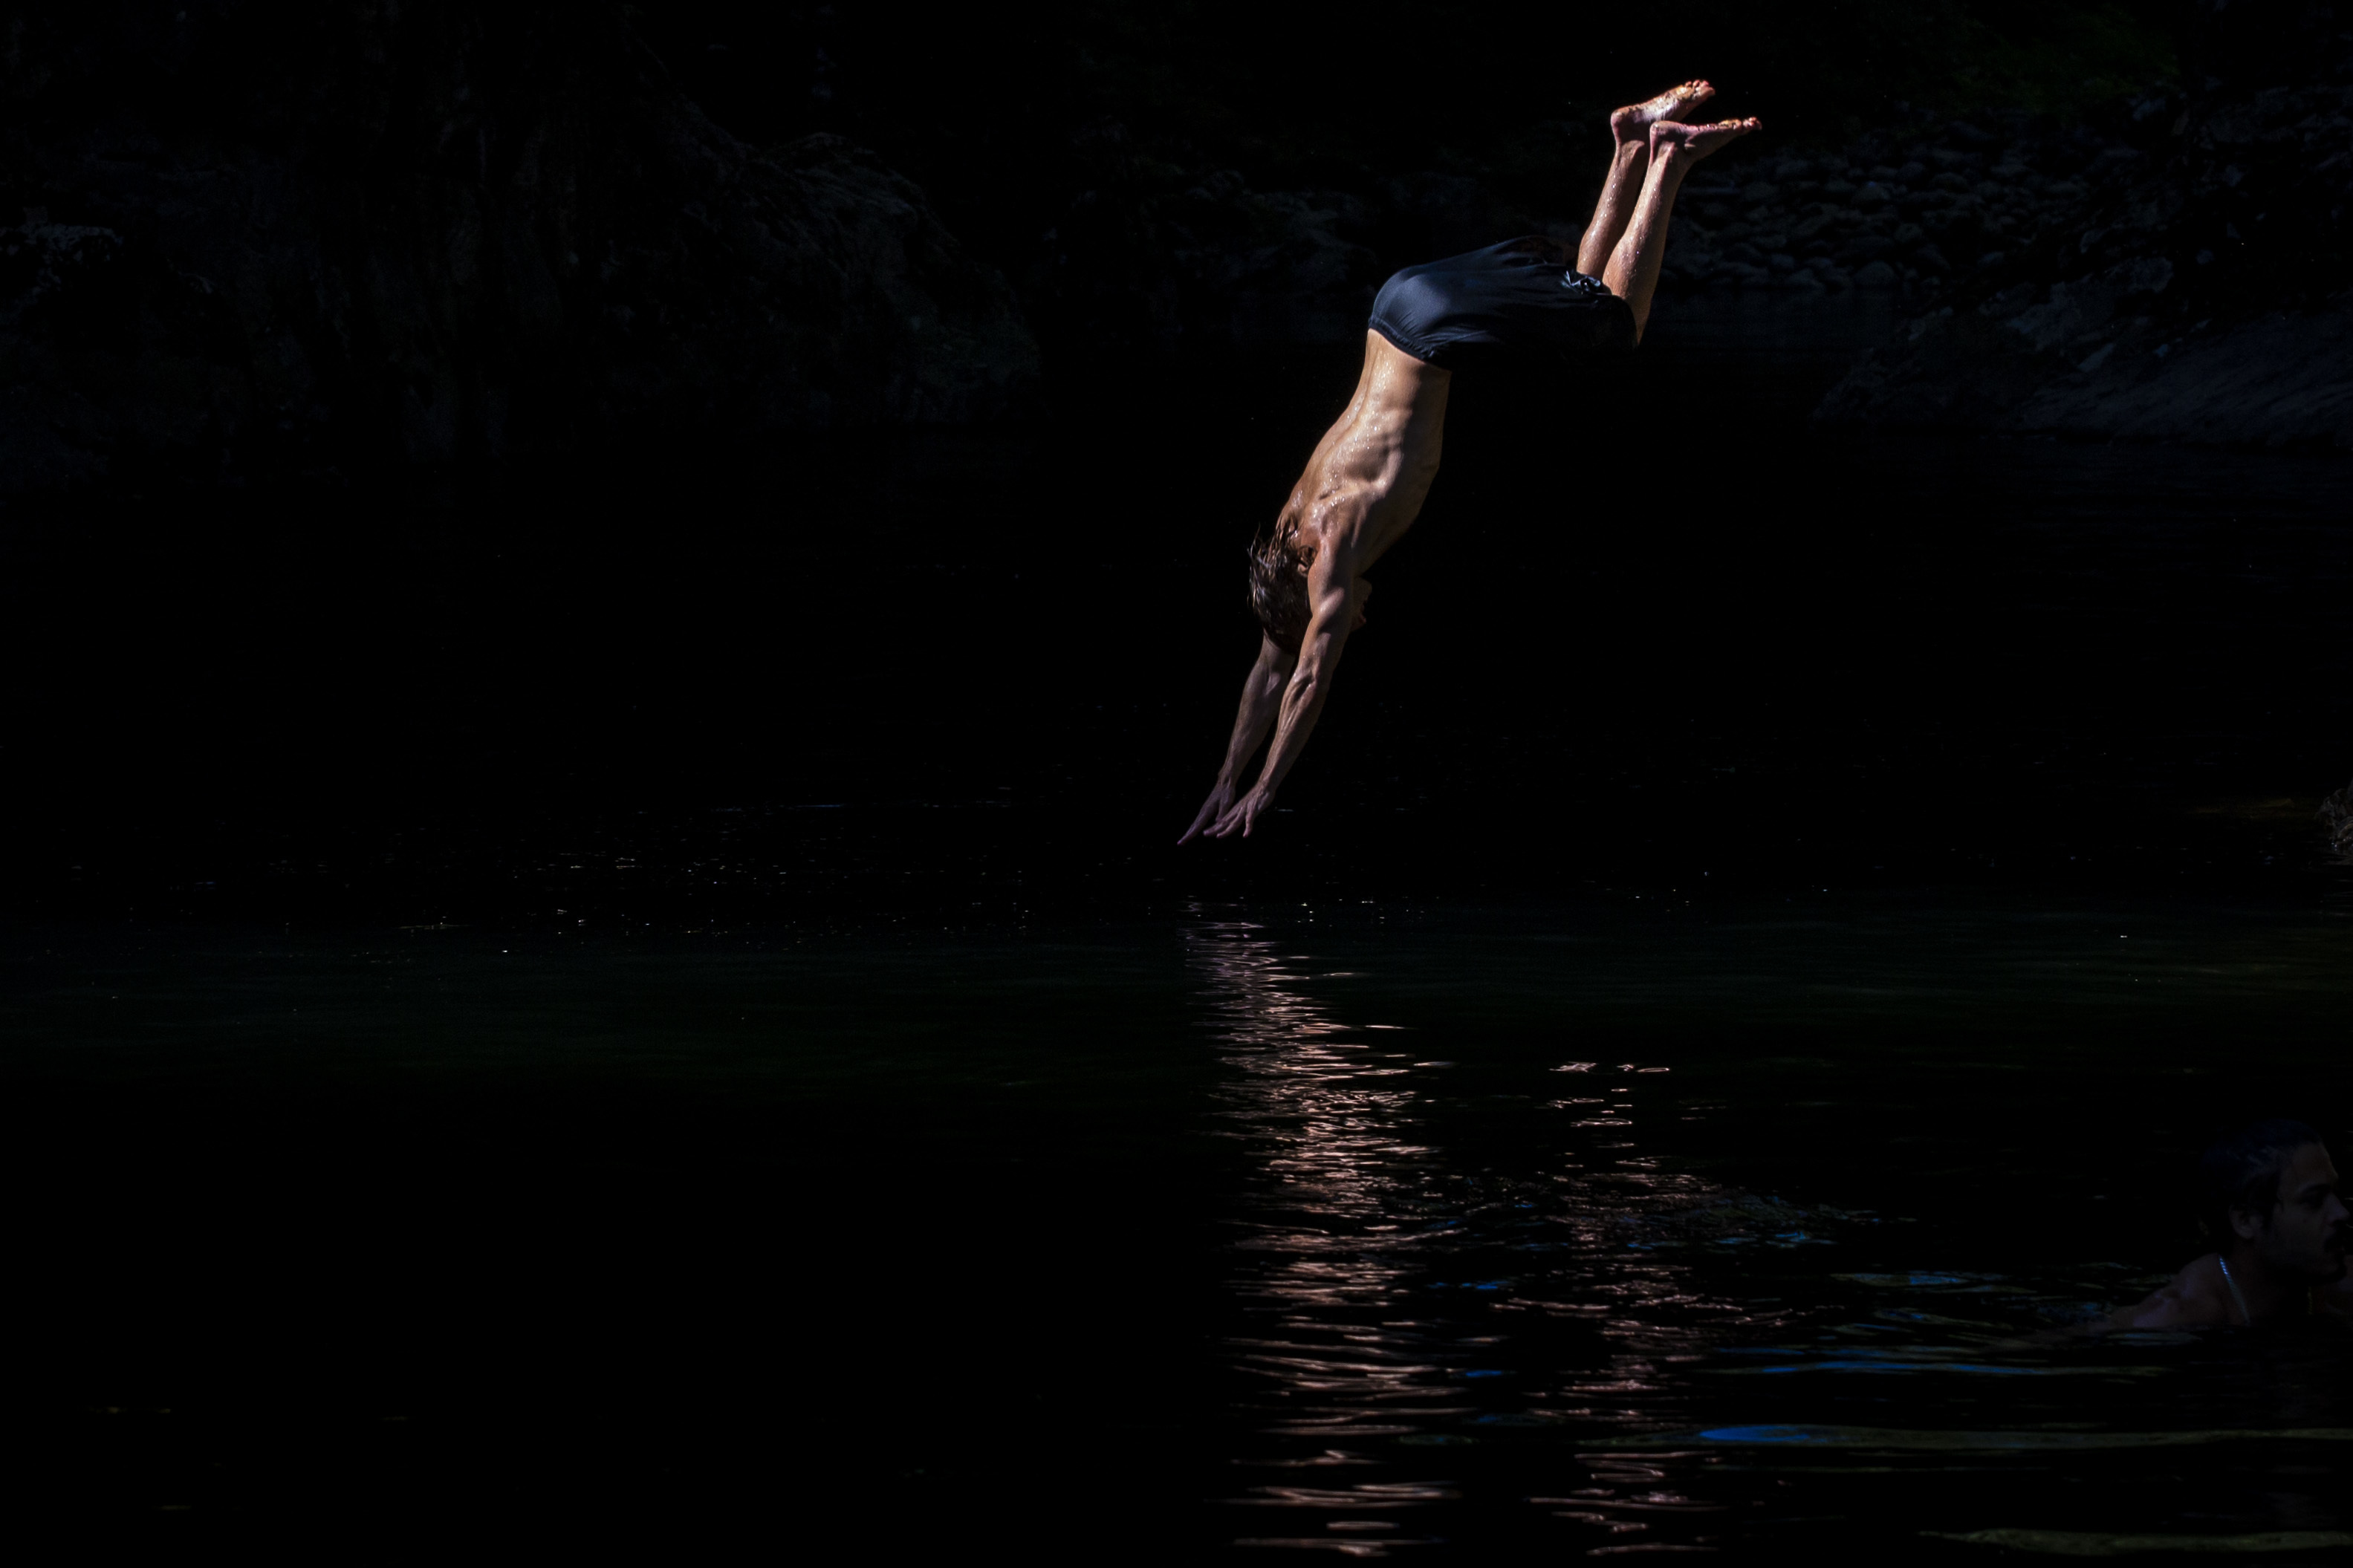 David Frank dives off a cliff into the Capilano river in North Vancouver, B.C., on Aug. 26, 2019. (Ben Nelms/CBC)